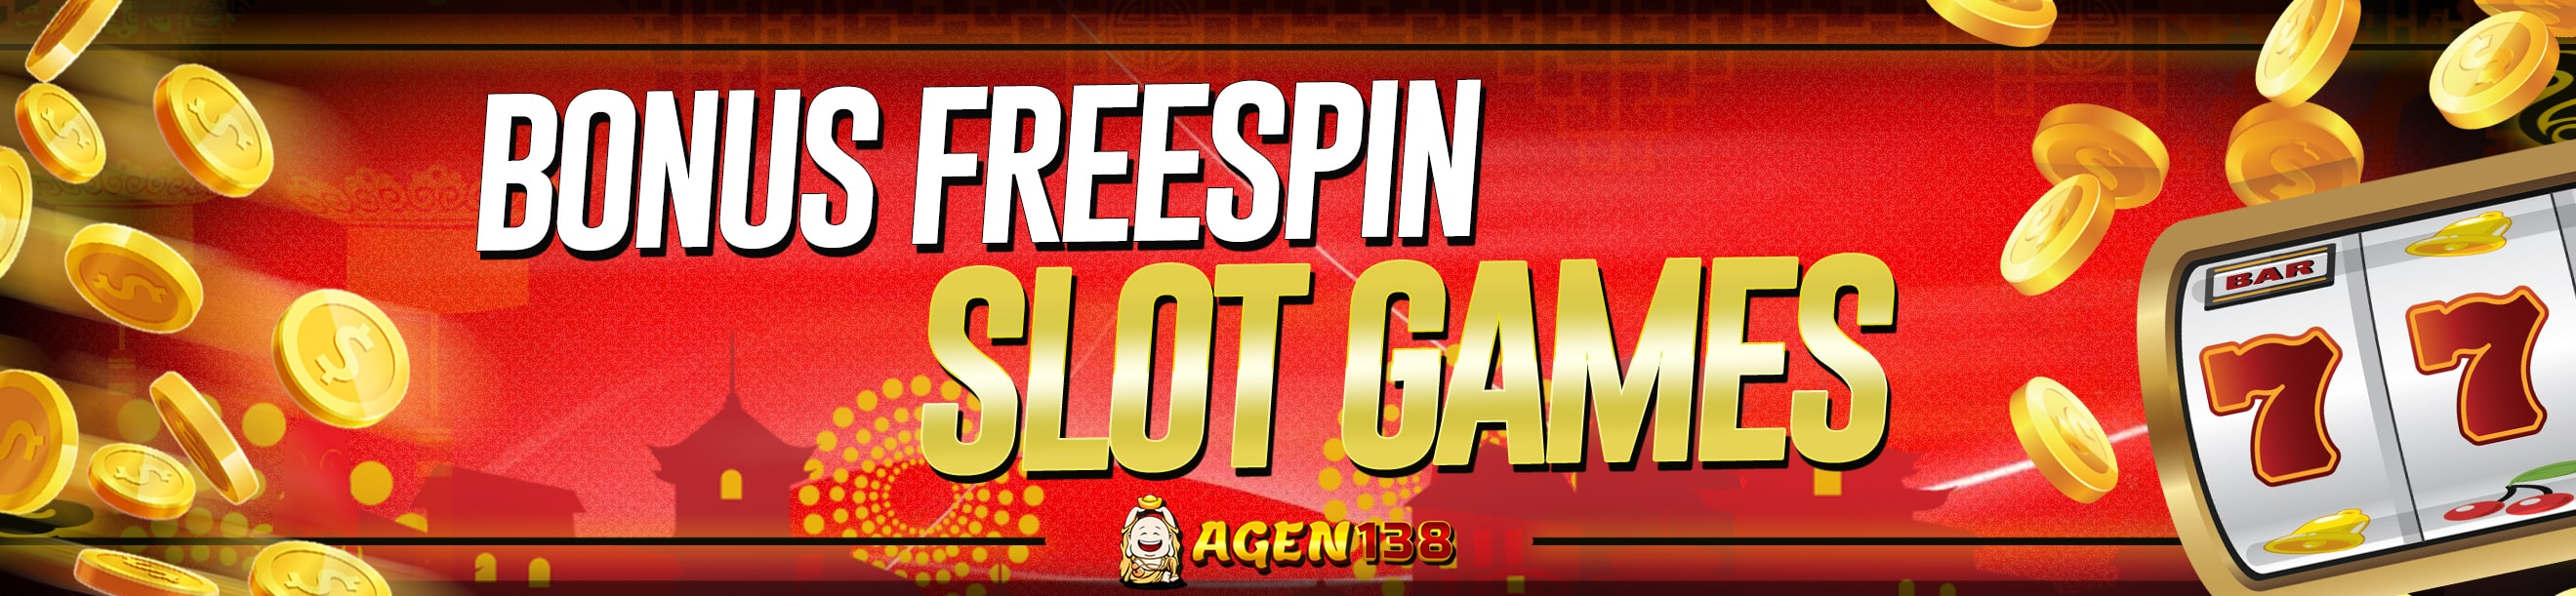 BONUS FREESPIN SLOT GAMES